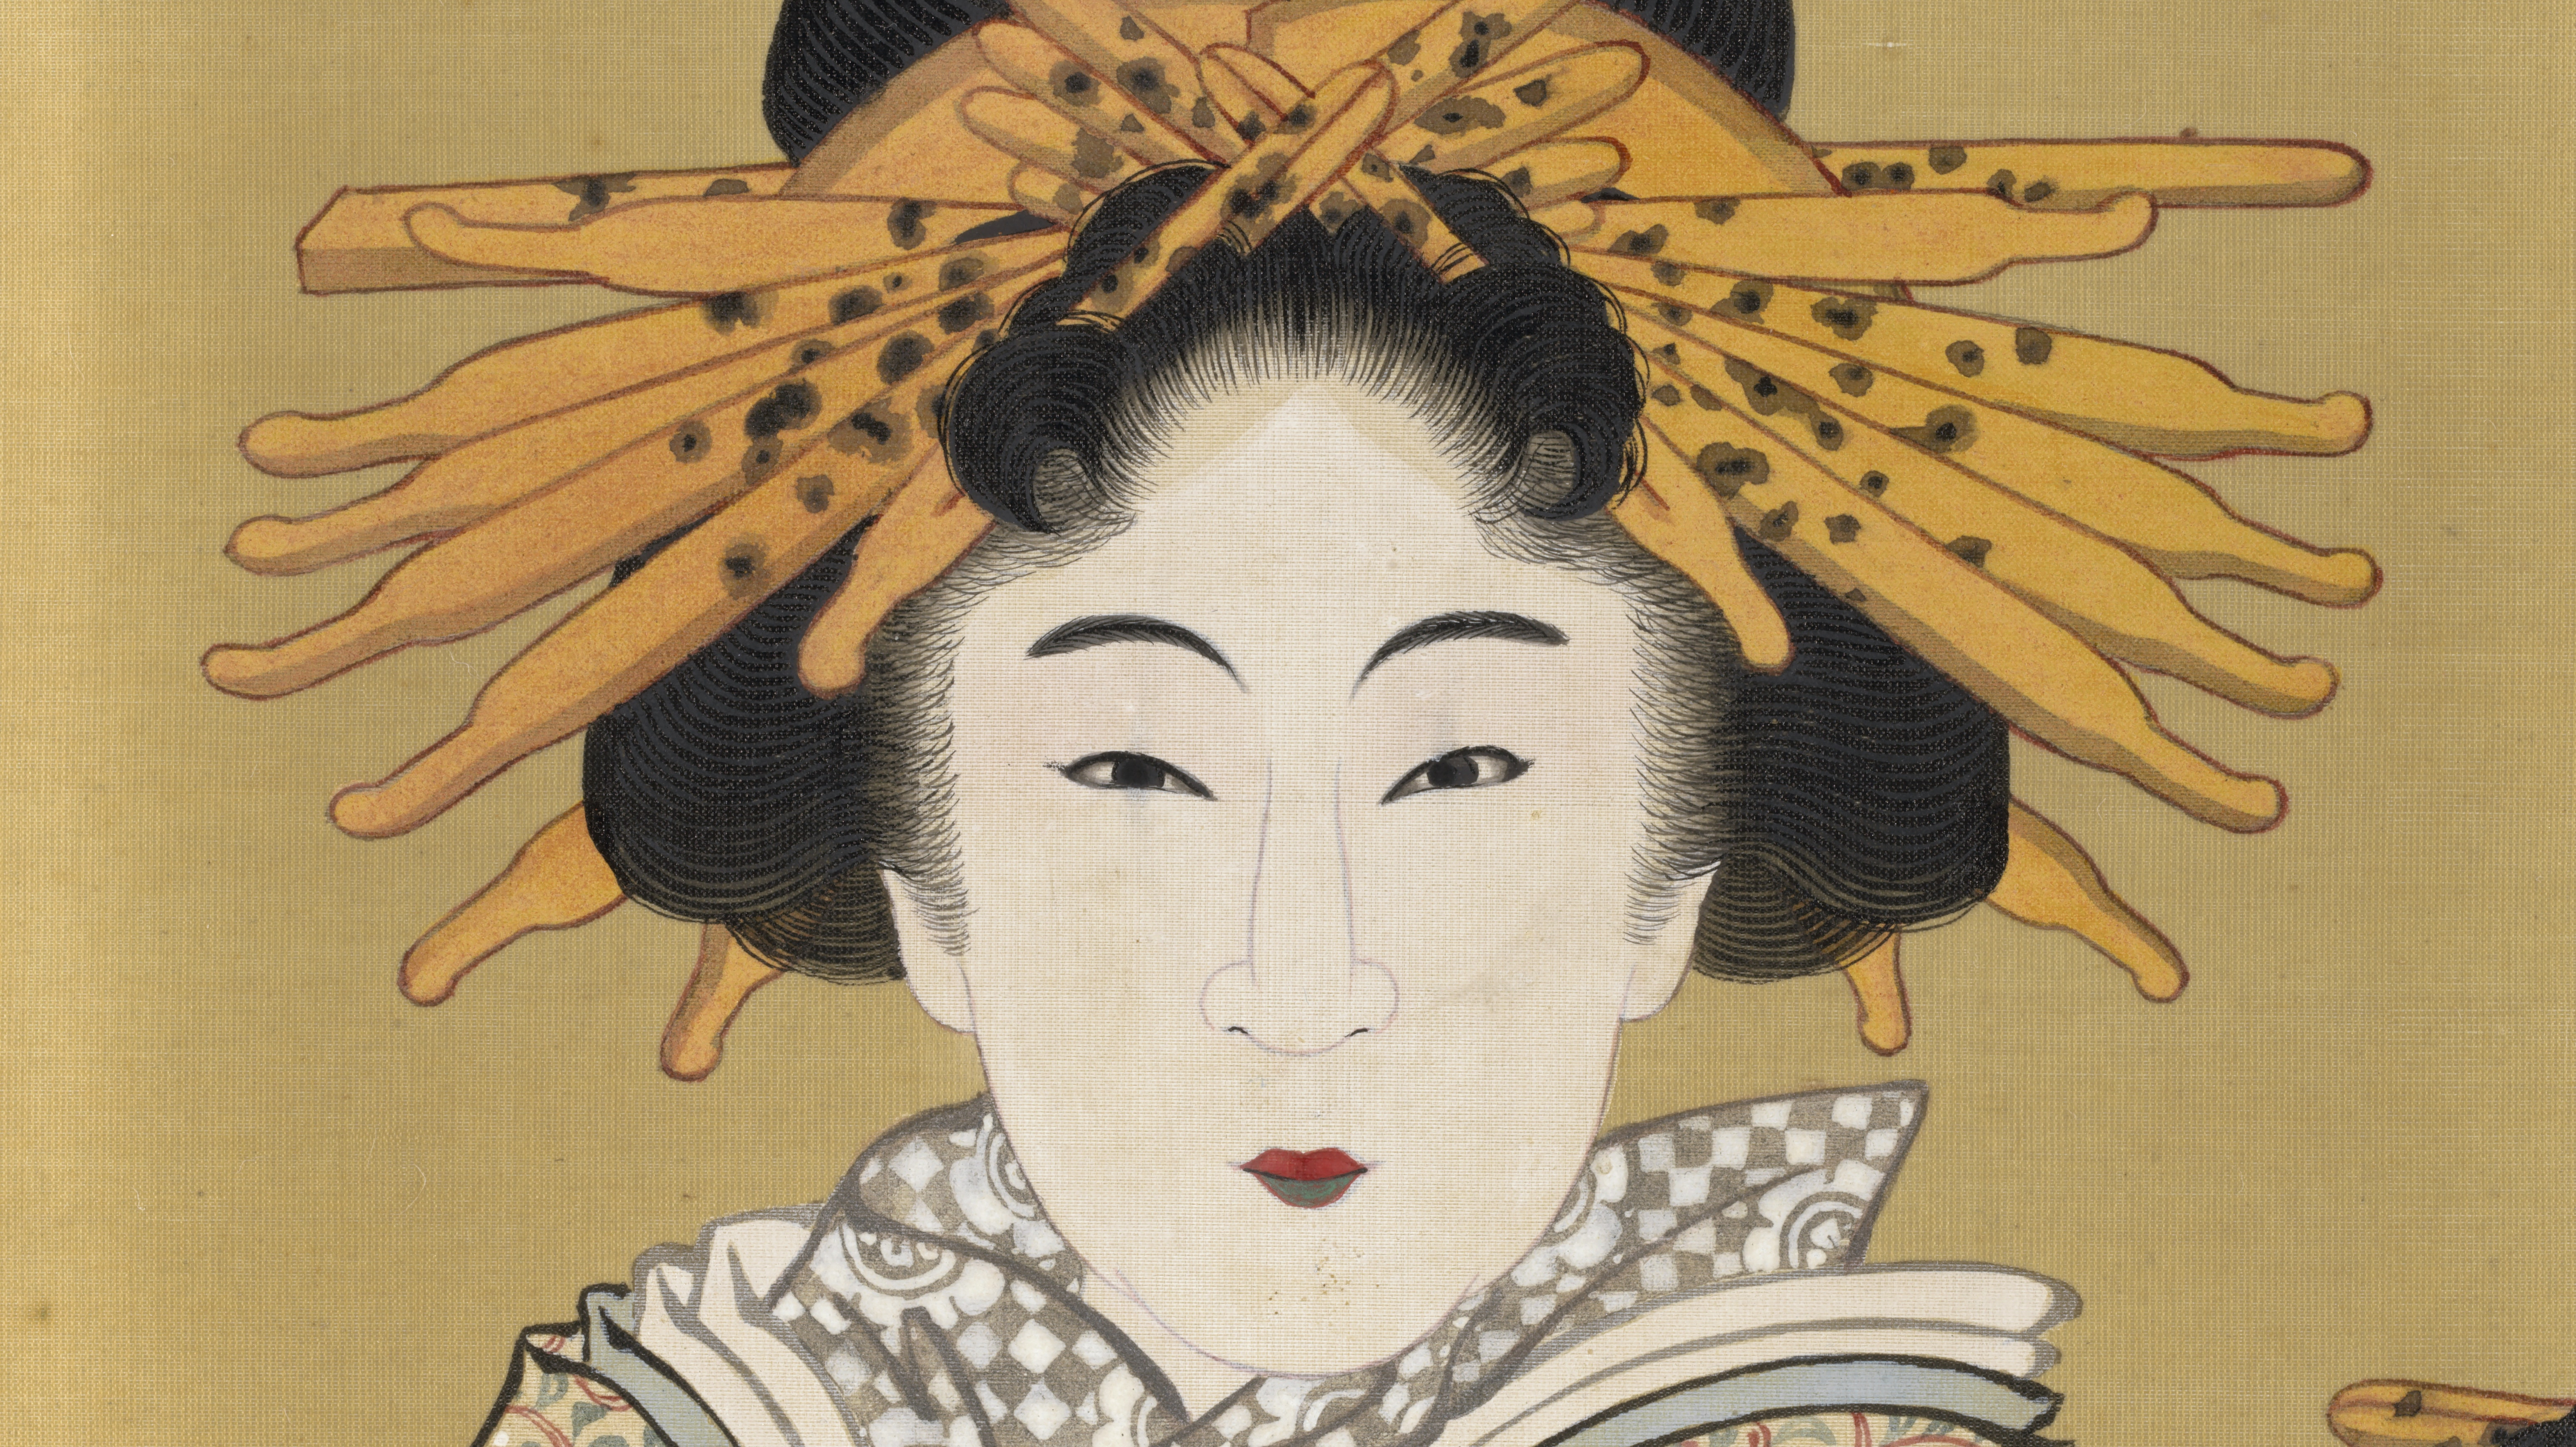 A Japanese courtesan with an elabroate hairstyle looks directly at the viewer